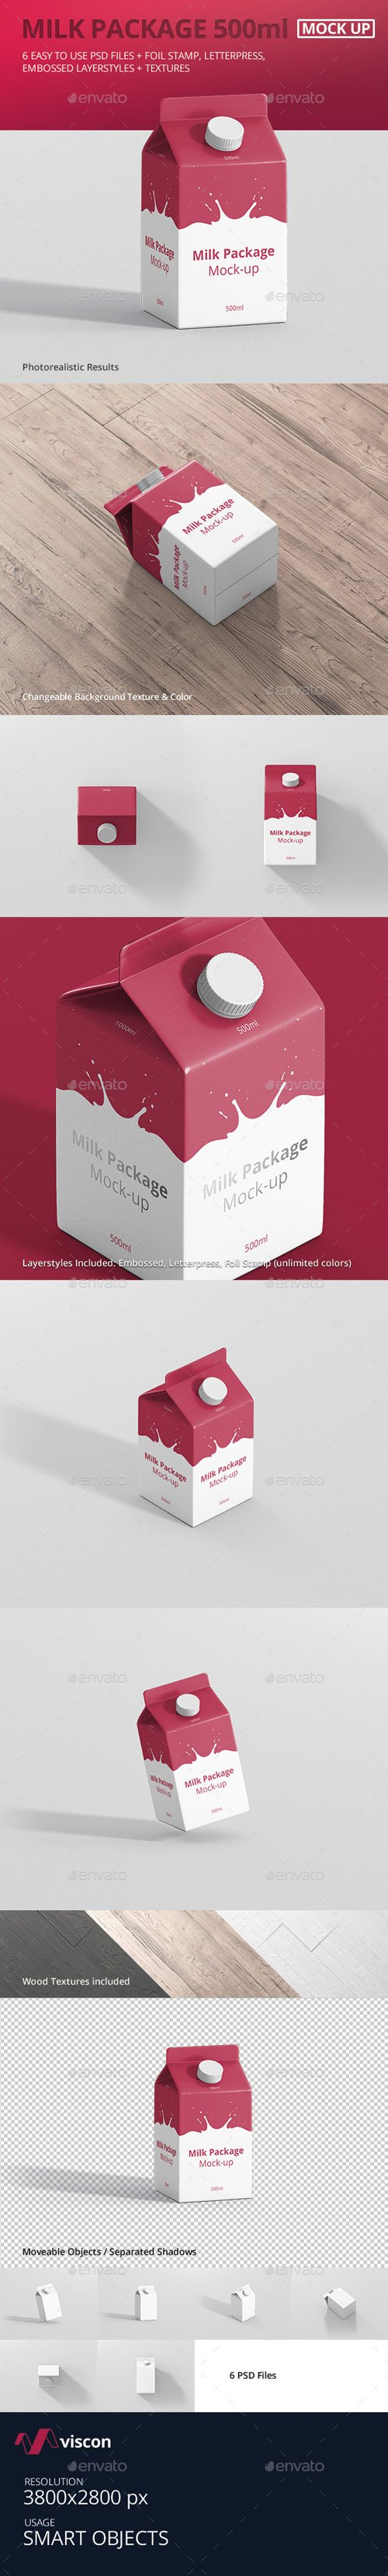 Juice / Milk Mockup - 500ml Carton Box 18181976